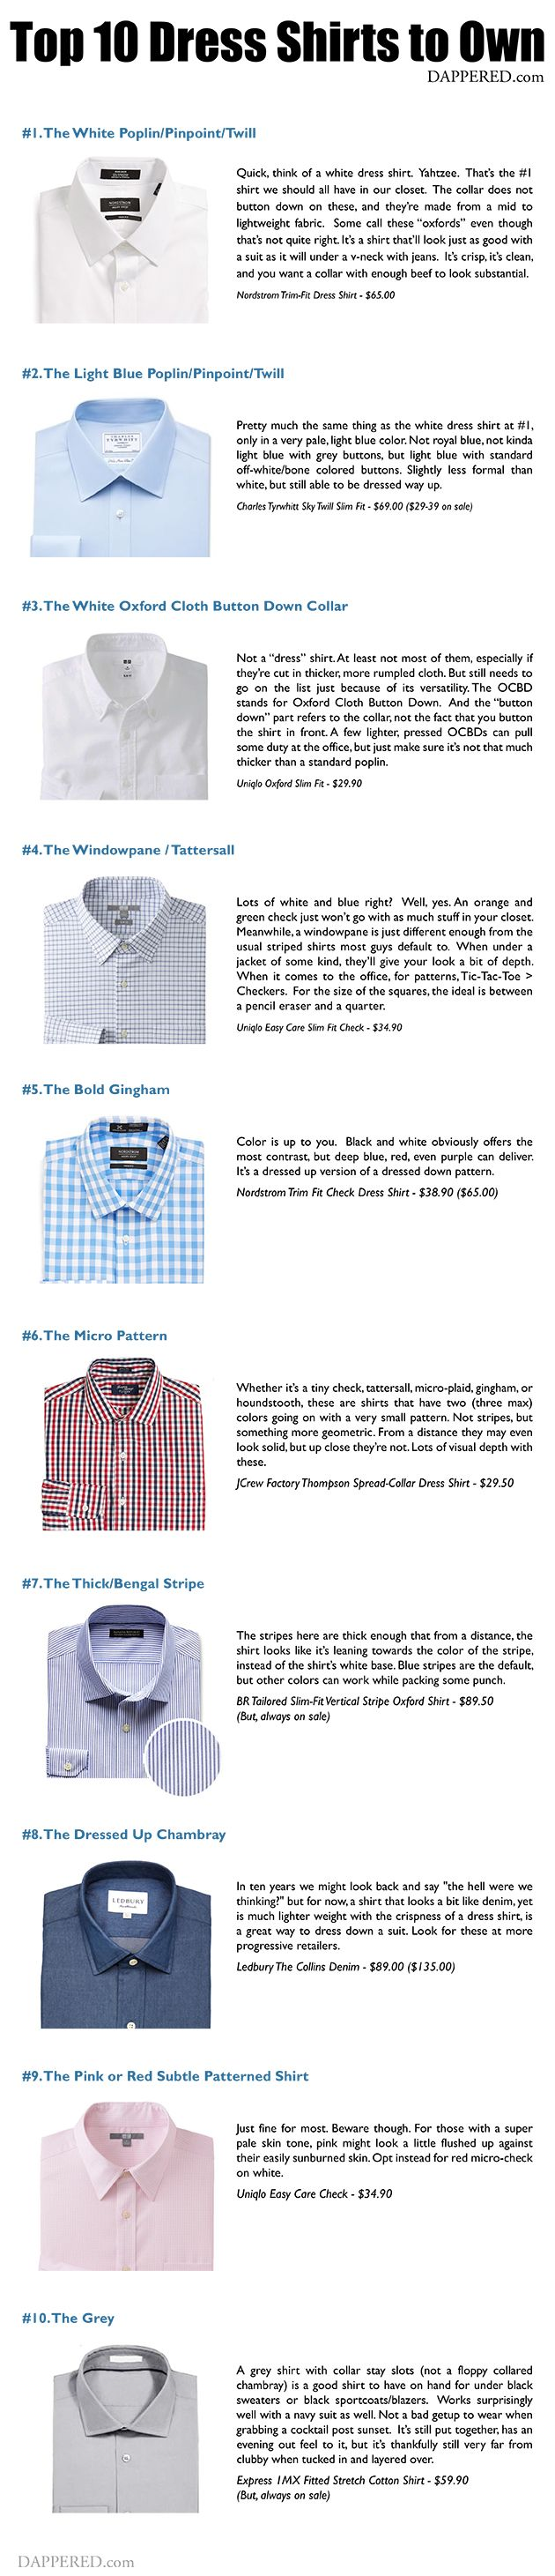 Shirt design types - The Top 10 Types Of Dress Shirts To Own